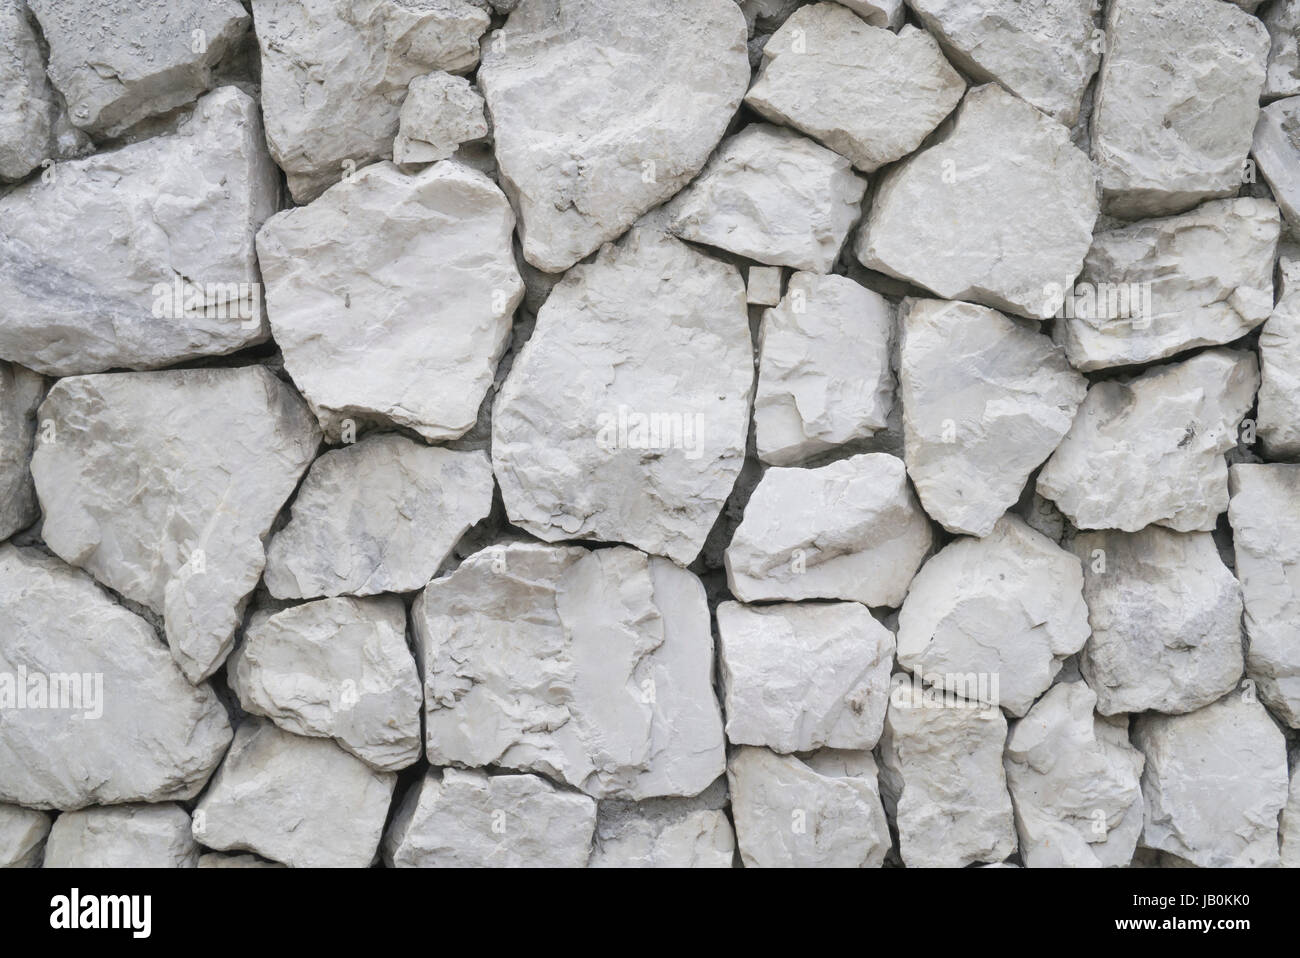 Close up background of white stone wall architecture wallpaper - Stock Image